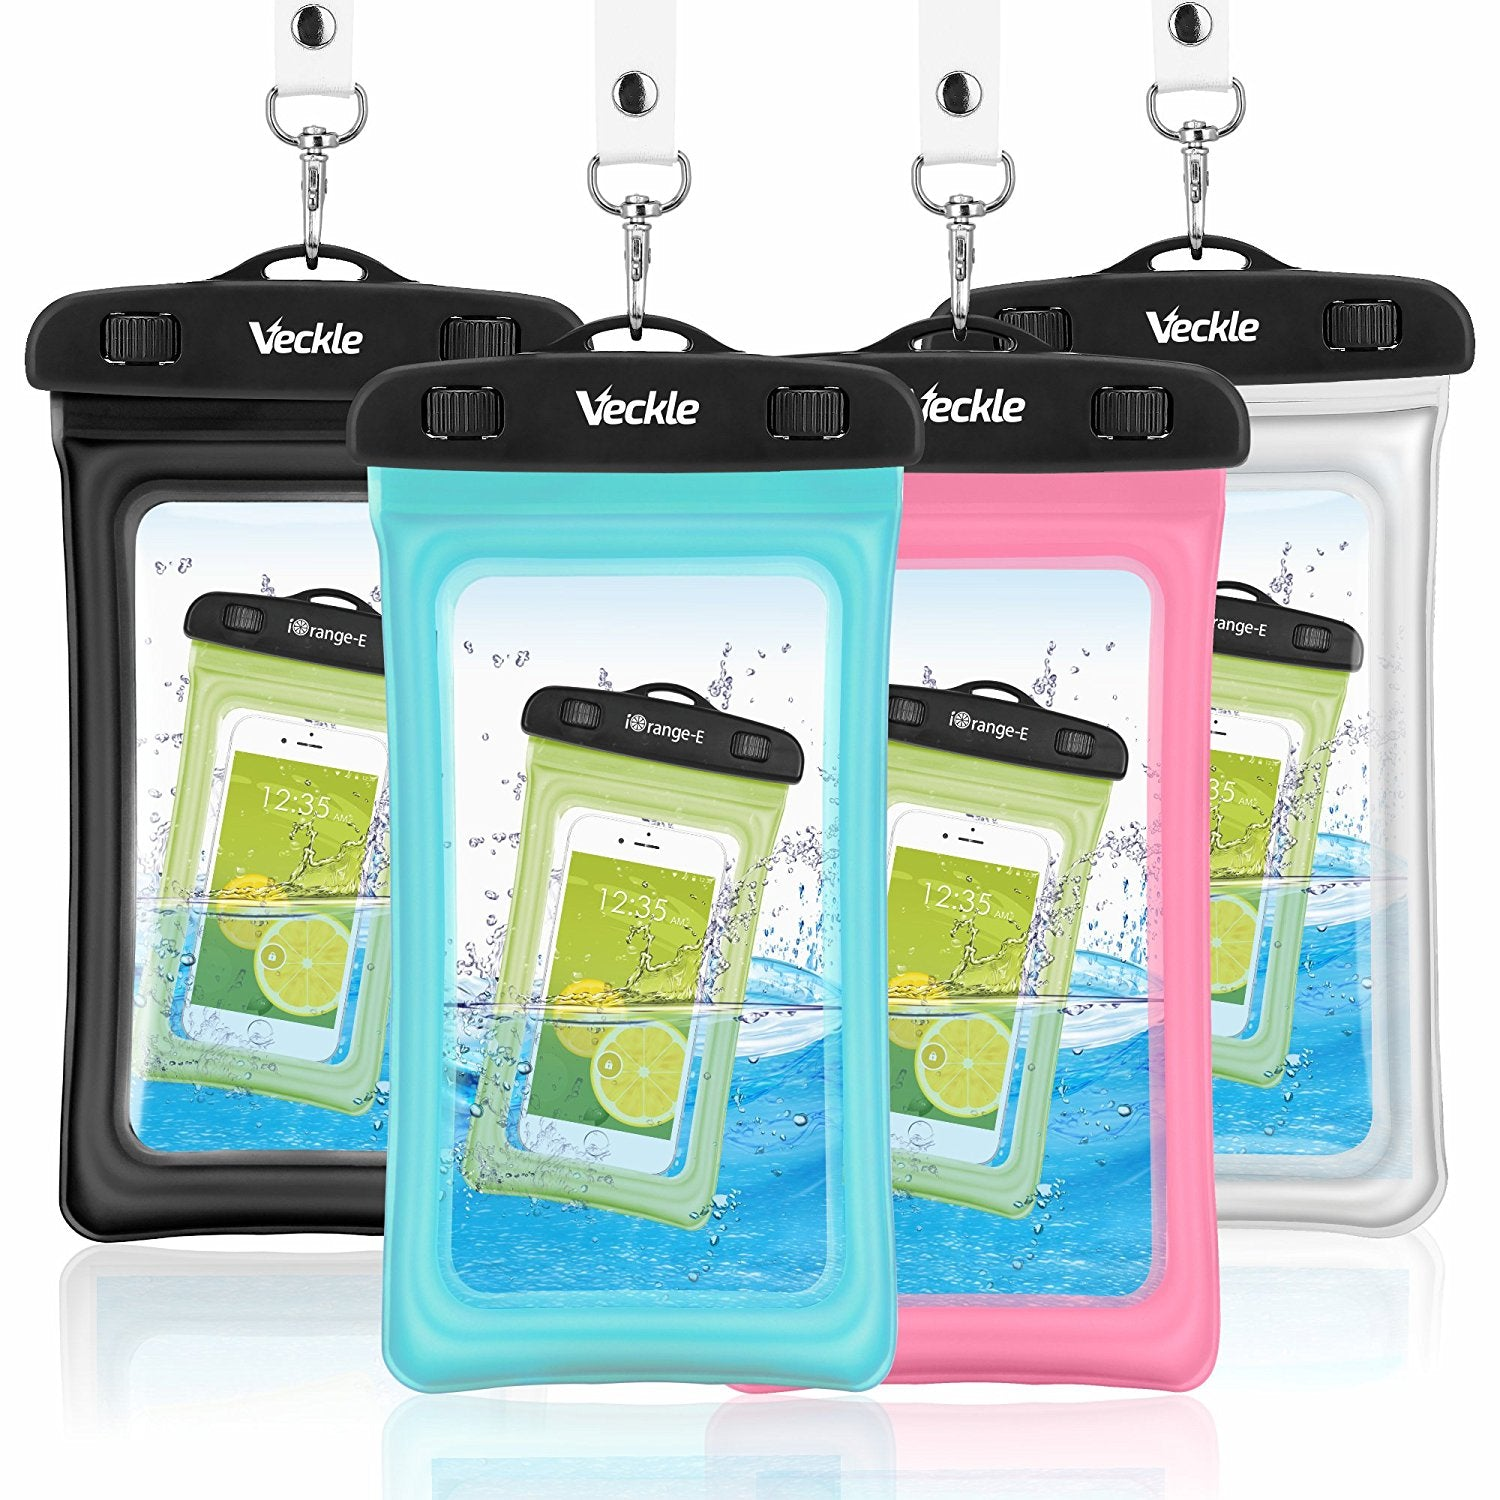 15b6475914 Waterproof Case, 4 Pack Veckle Floating Waterproof Cell Phone Pouch  Universal TPU Clear Water Proof Dry Beach Bag for iPhone X 8 7 6S 6 Plus,  Samsung Galaxy ...